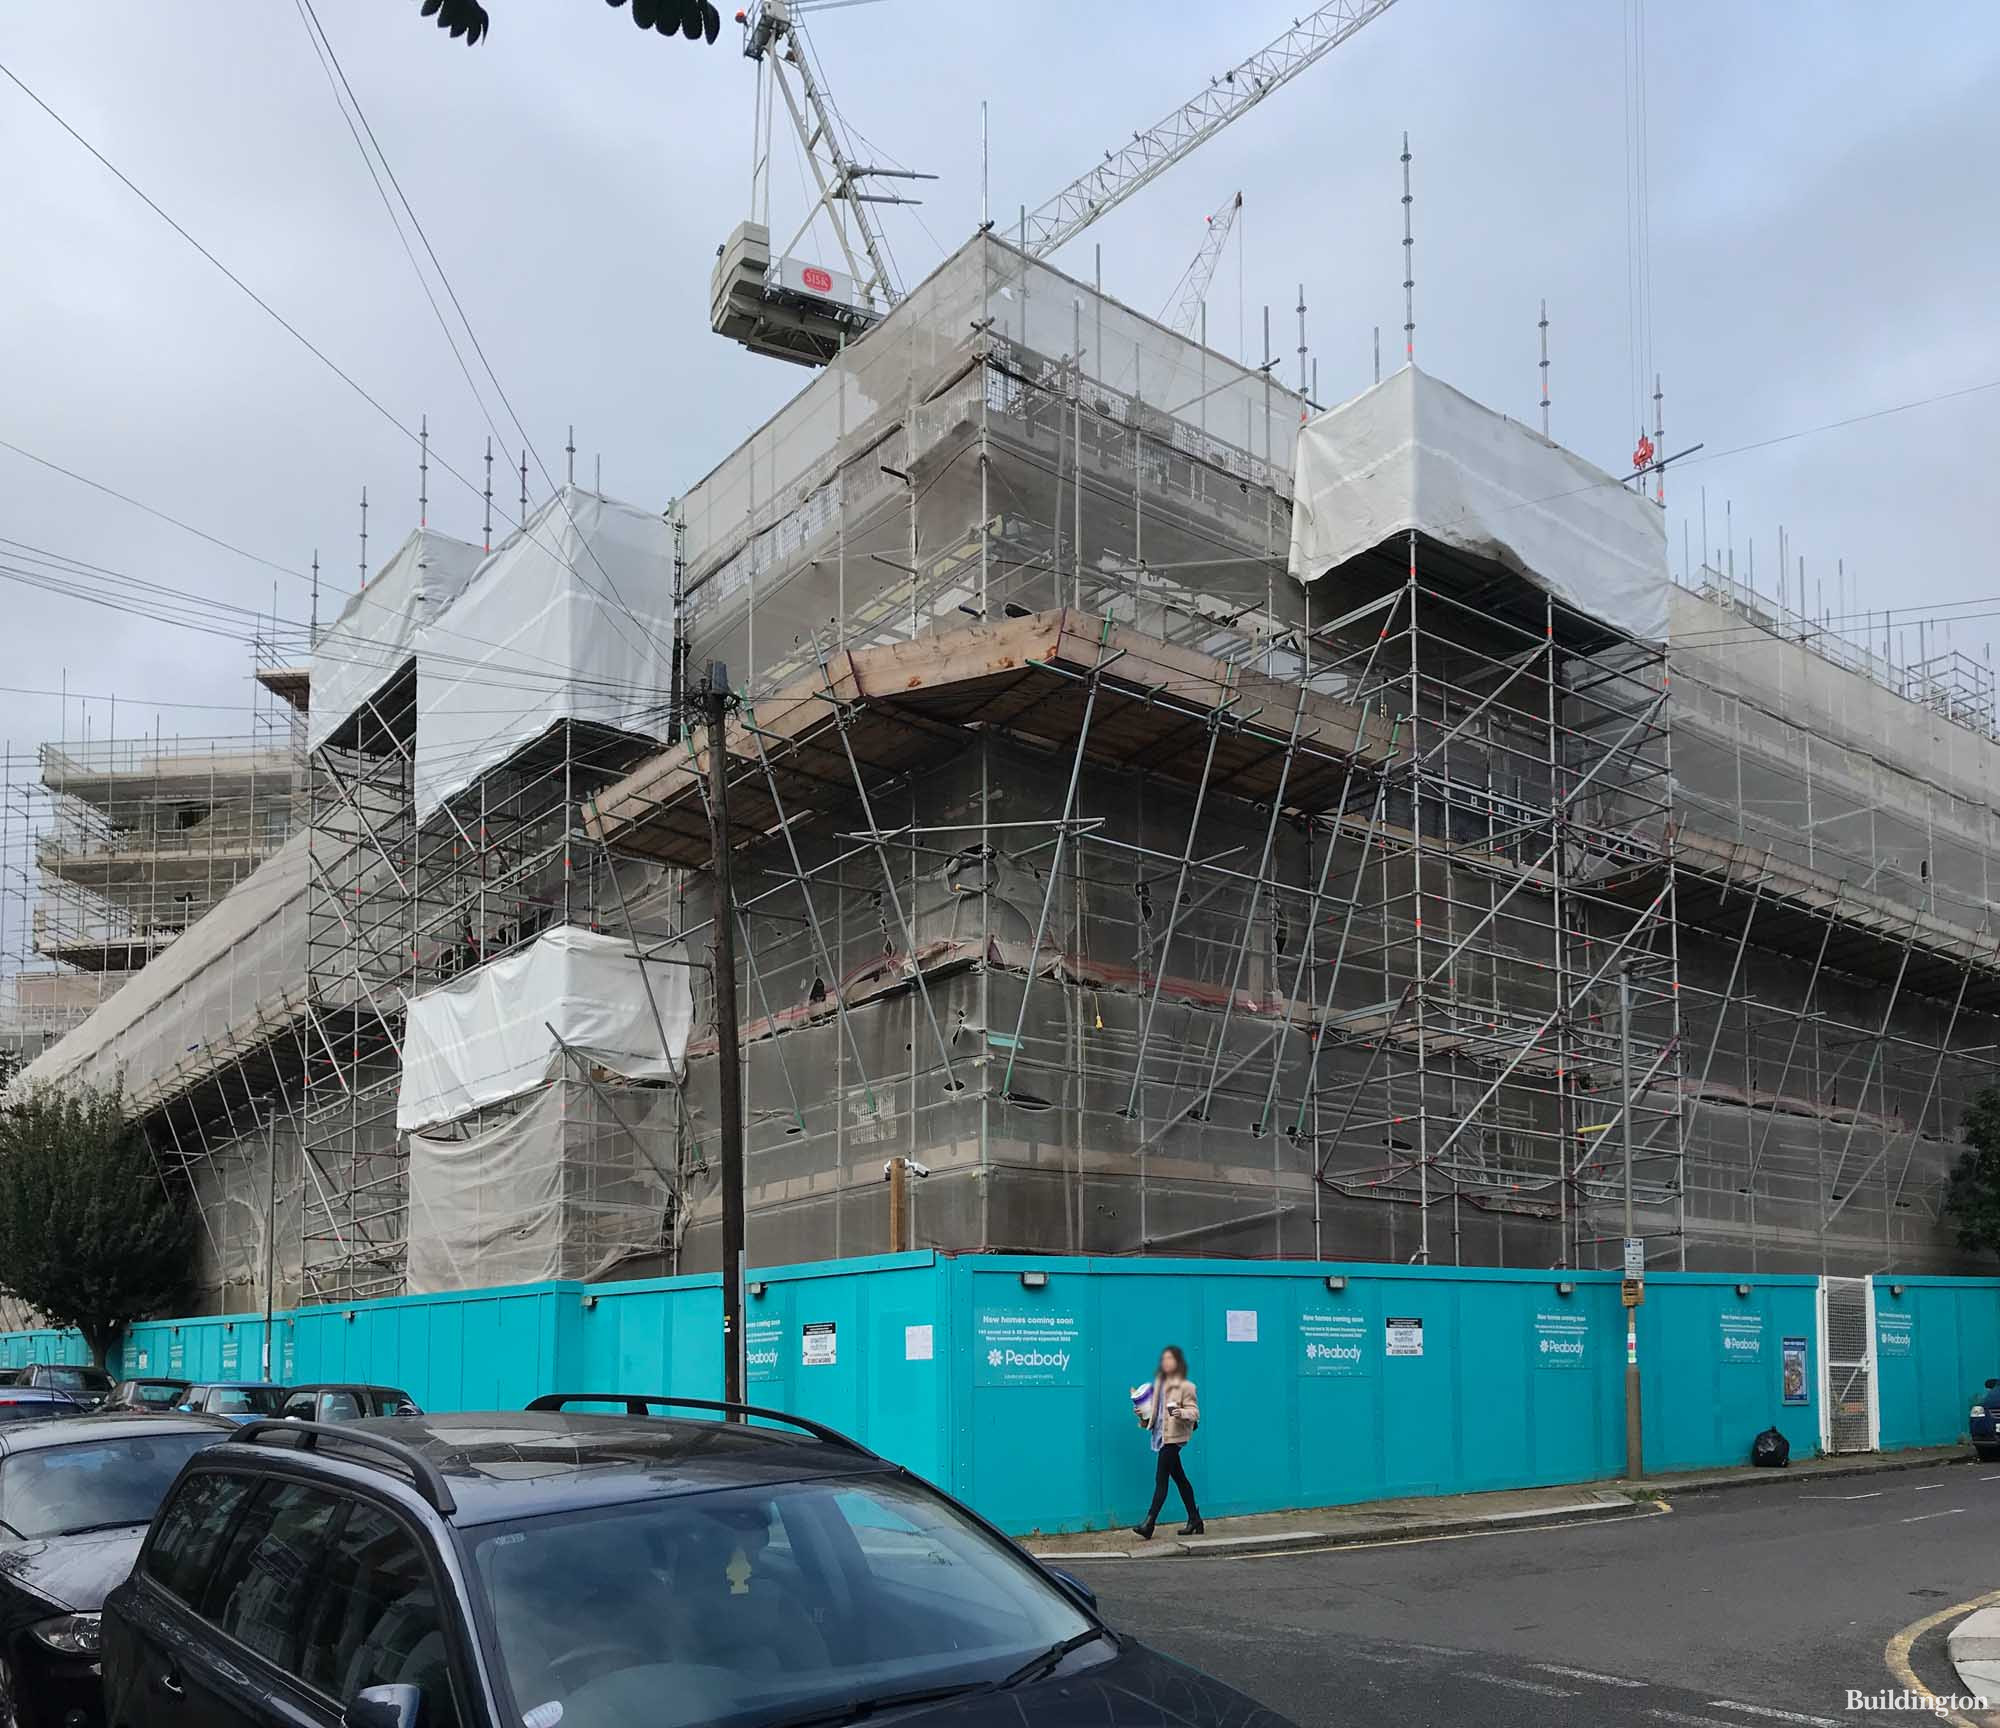 John Sisk & Son on site at St John's Way regeneration on the corner of Comyn and Eckstein Road in Clapham, London SW11.